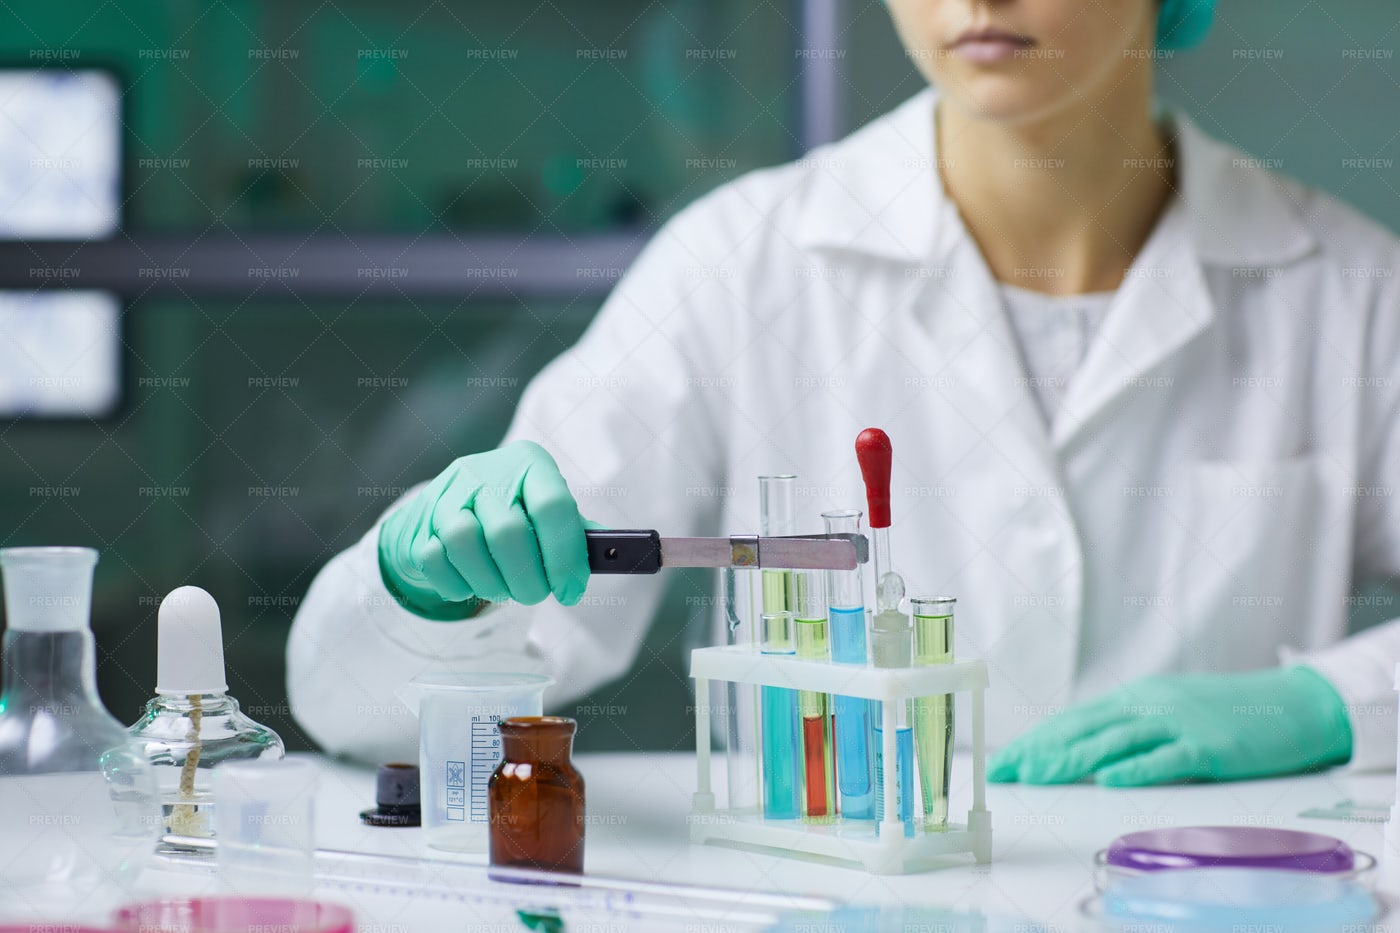 Medical Research Background: Stock Photos